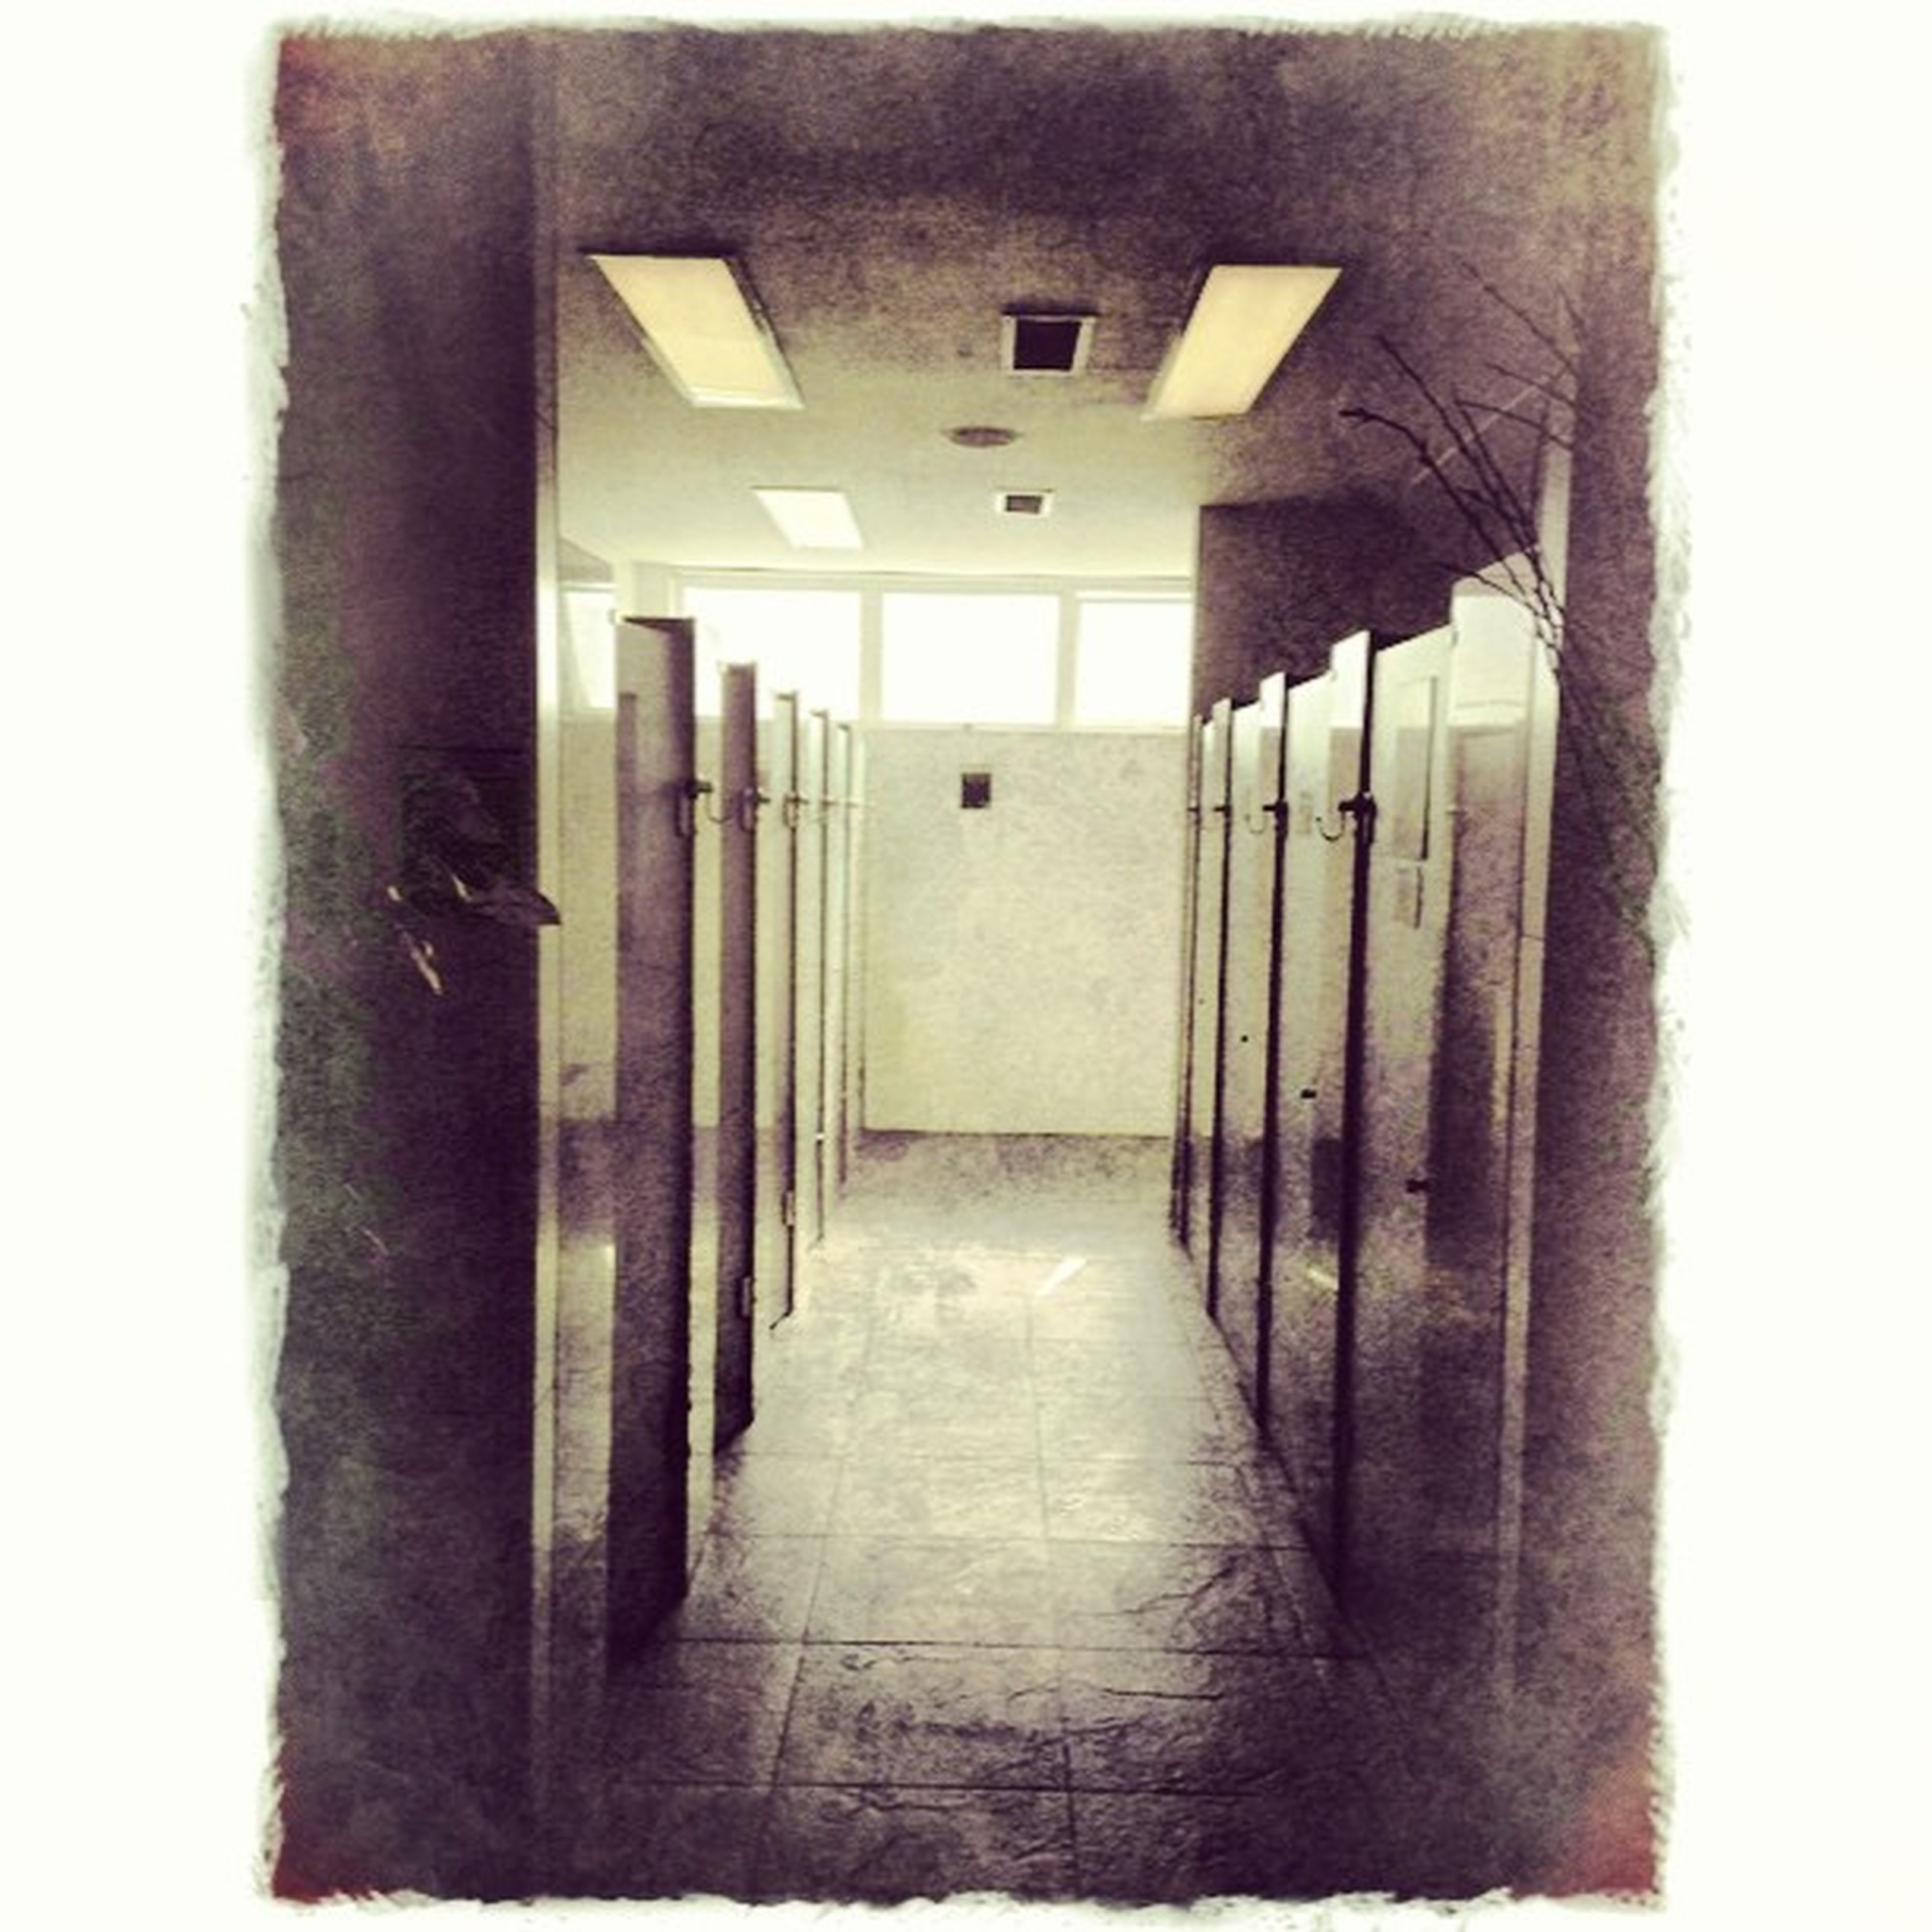 architecture, built structure, transfer print, auto post production filter, indoors, building exterior, the way forward, door, building, corridor, wall - building feature, empty, entrance, window, wall, no people, absence, house, diminishing perspective, narrow